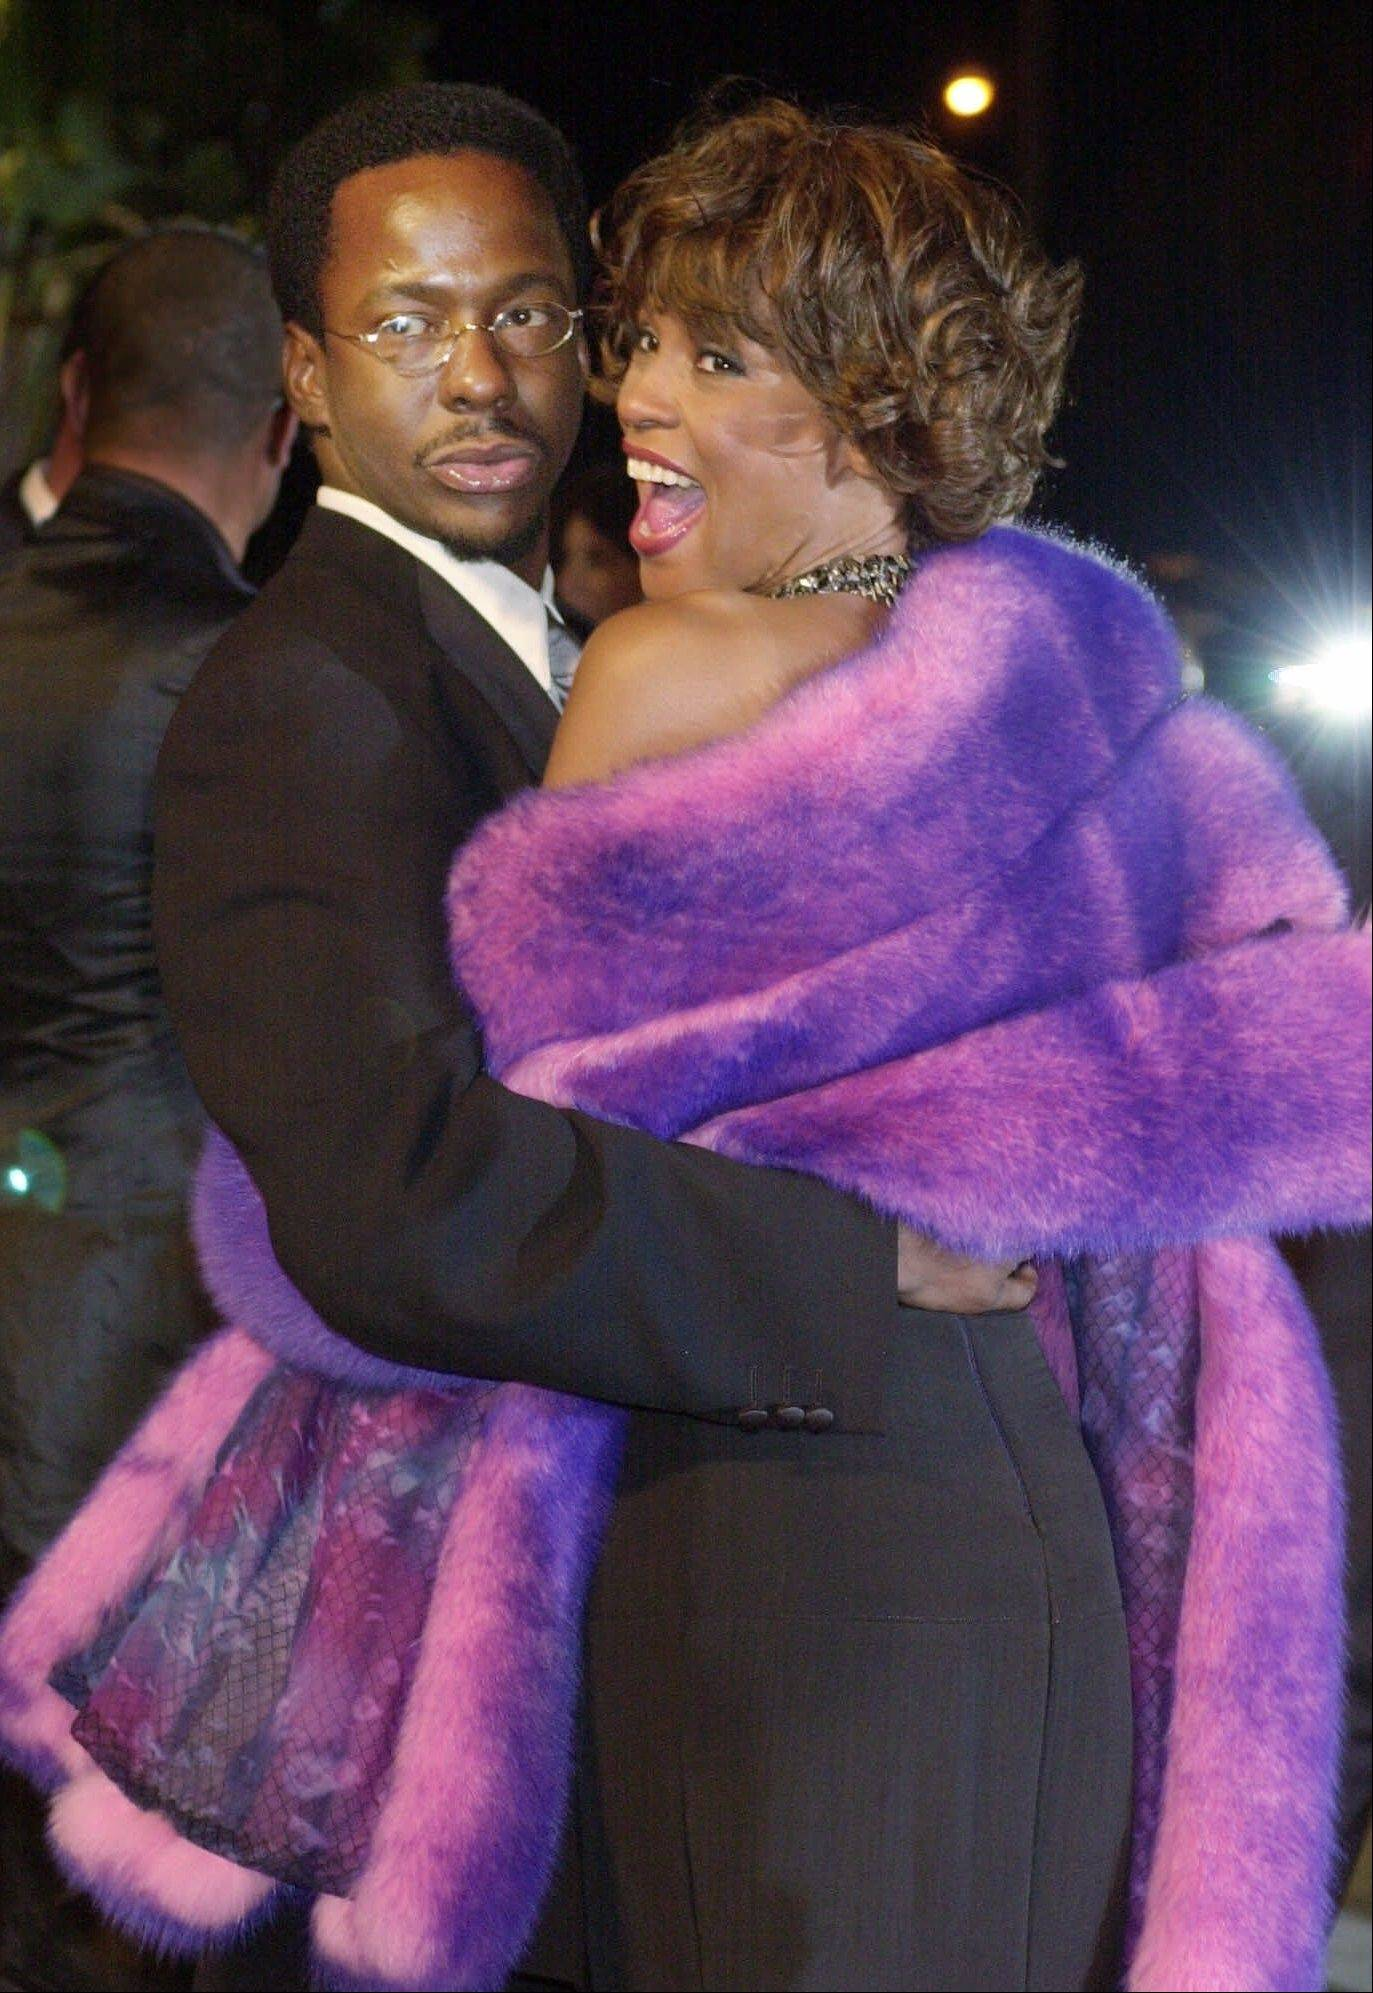 On March 25, 2001, Bobby Brown and his then-wife, Whitney Houston, arrived at Vanity Fair's Oscar party at Morton's in Hollywood. Houston, who ruled as pop music's queen until her majestic voice was ravaged by drug use and her regal image was ruined by erratic behavior and a tumultuous marriage to singer Bobby Brown, died Saturday. She was 48.